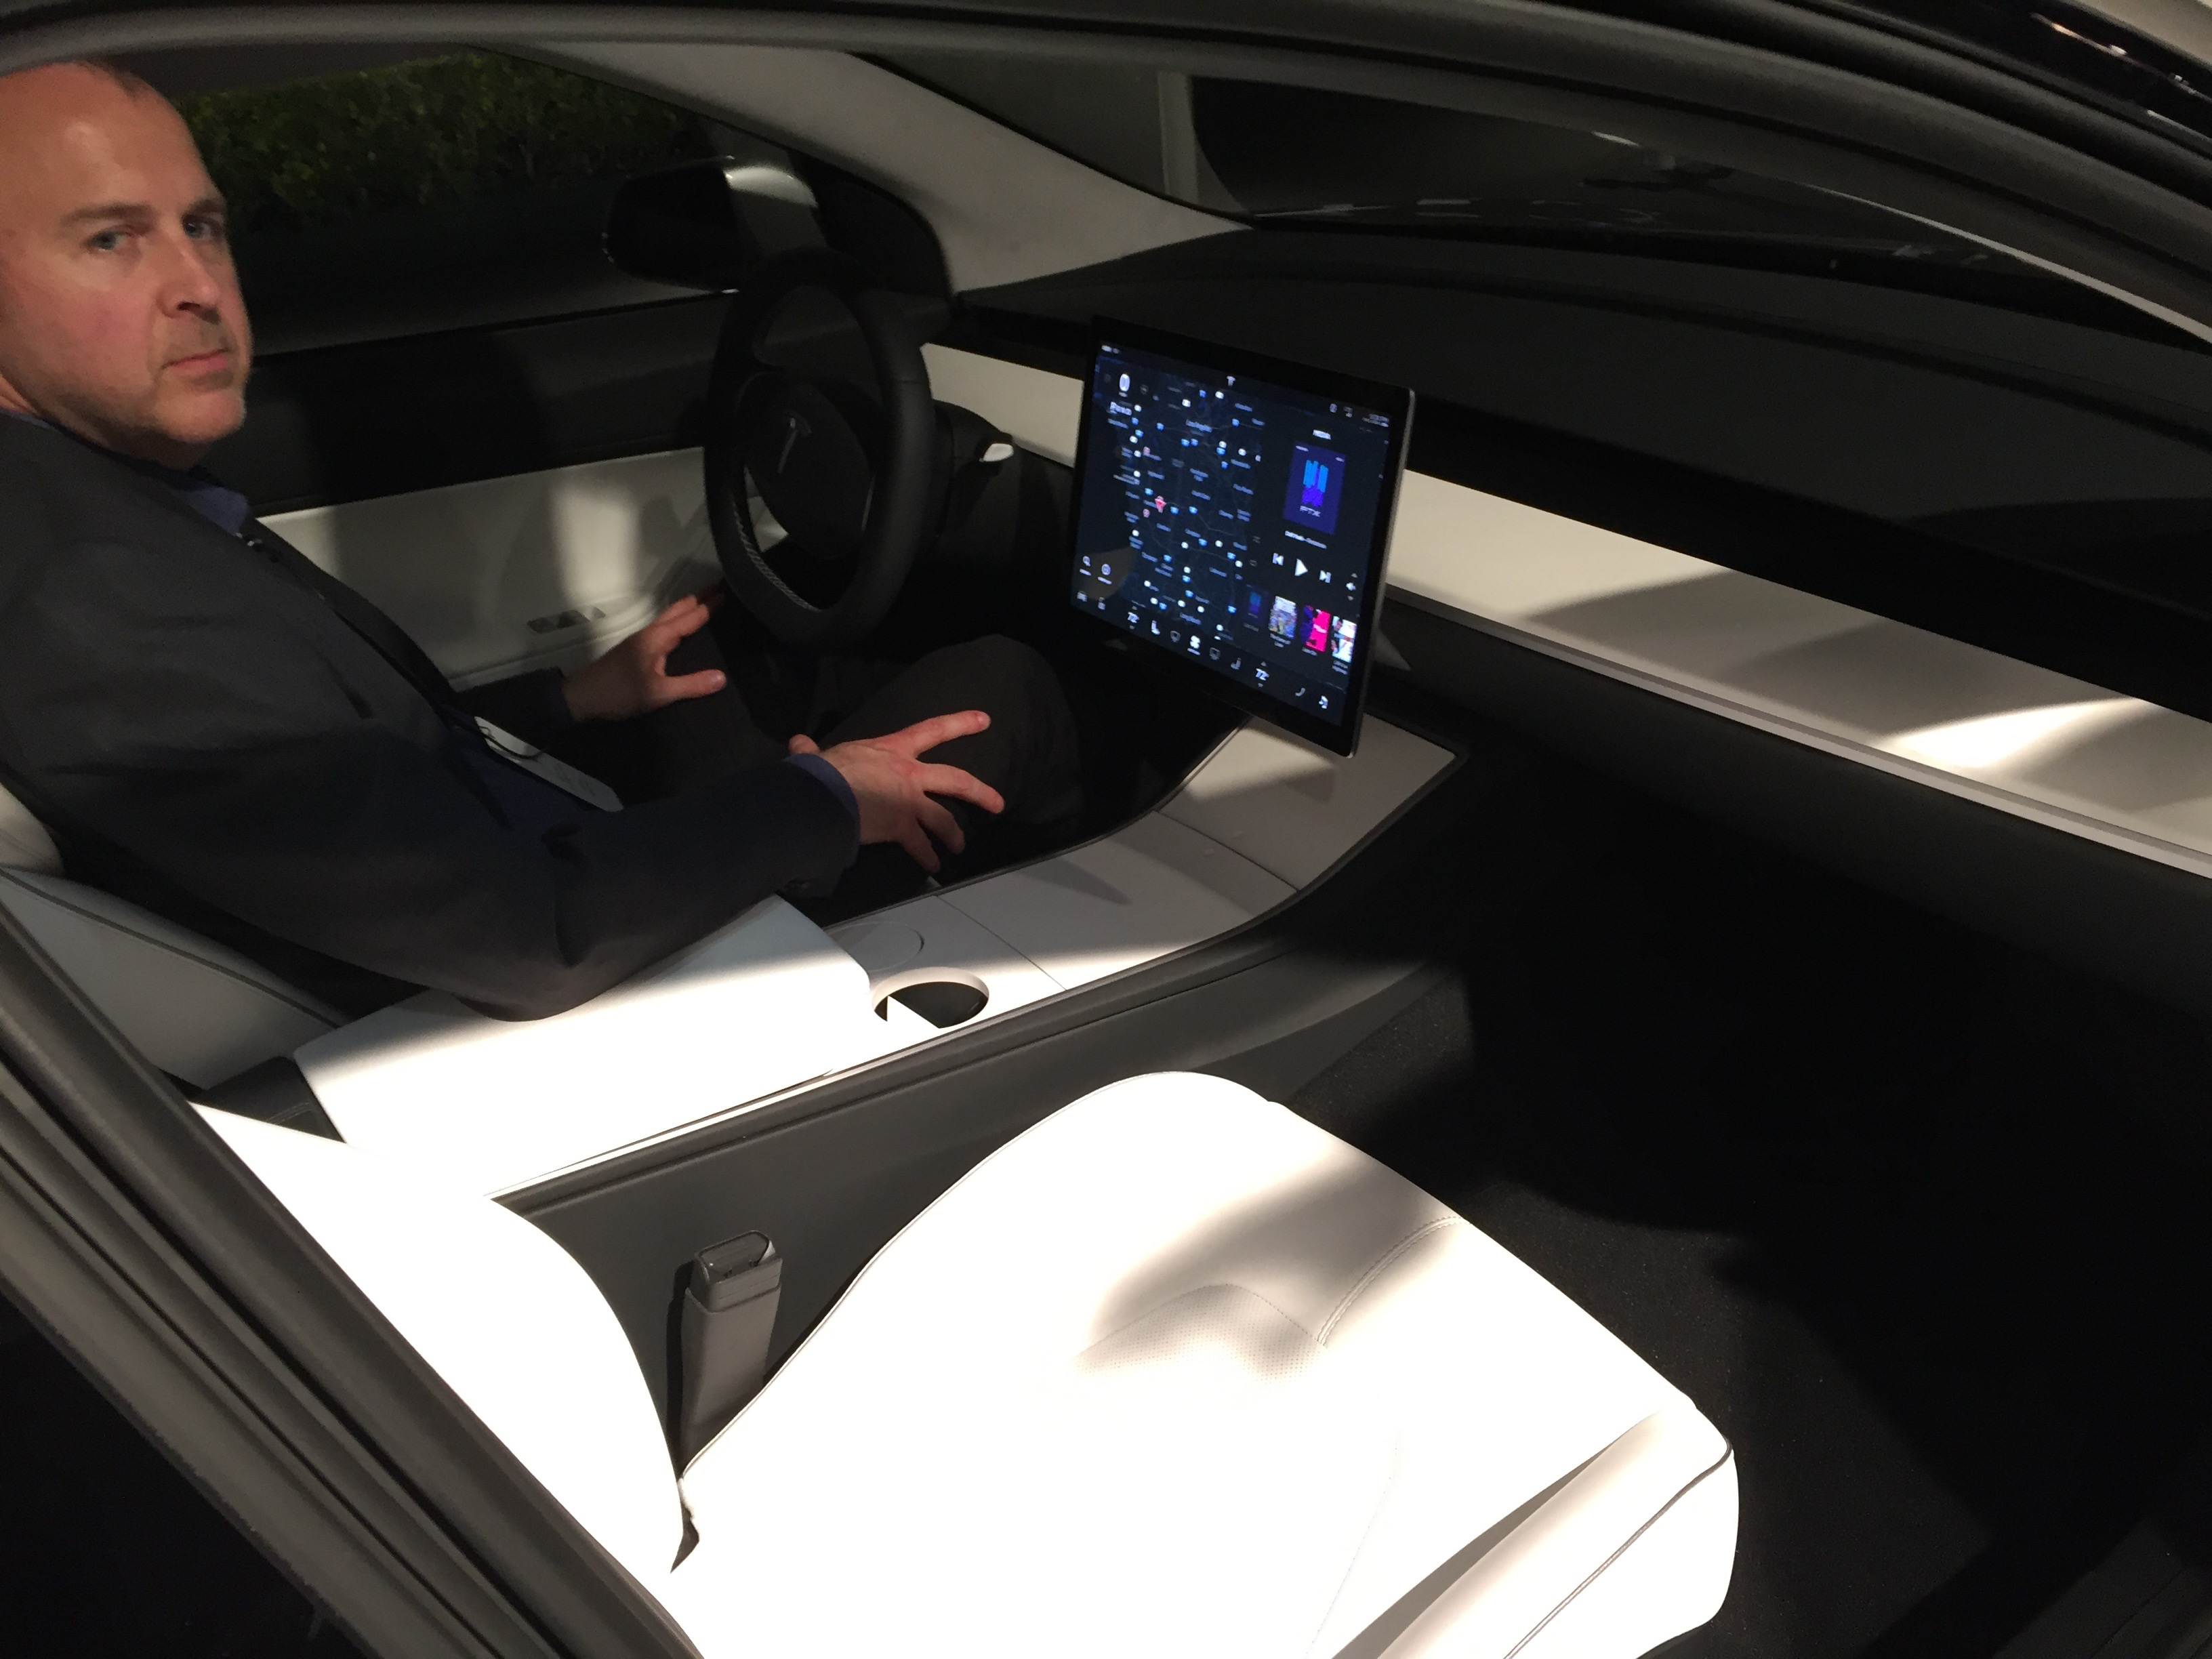 Tesla Model 3 Interior What Our Video Showed Isn T